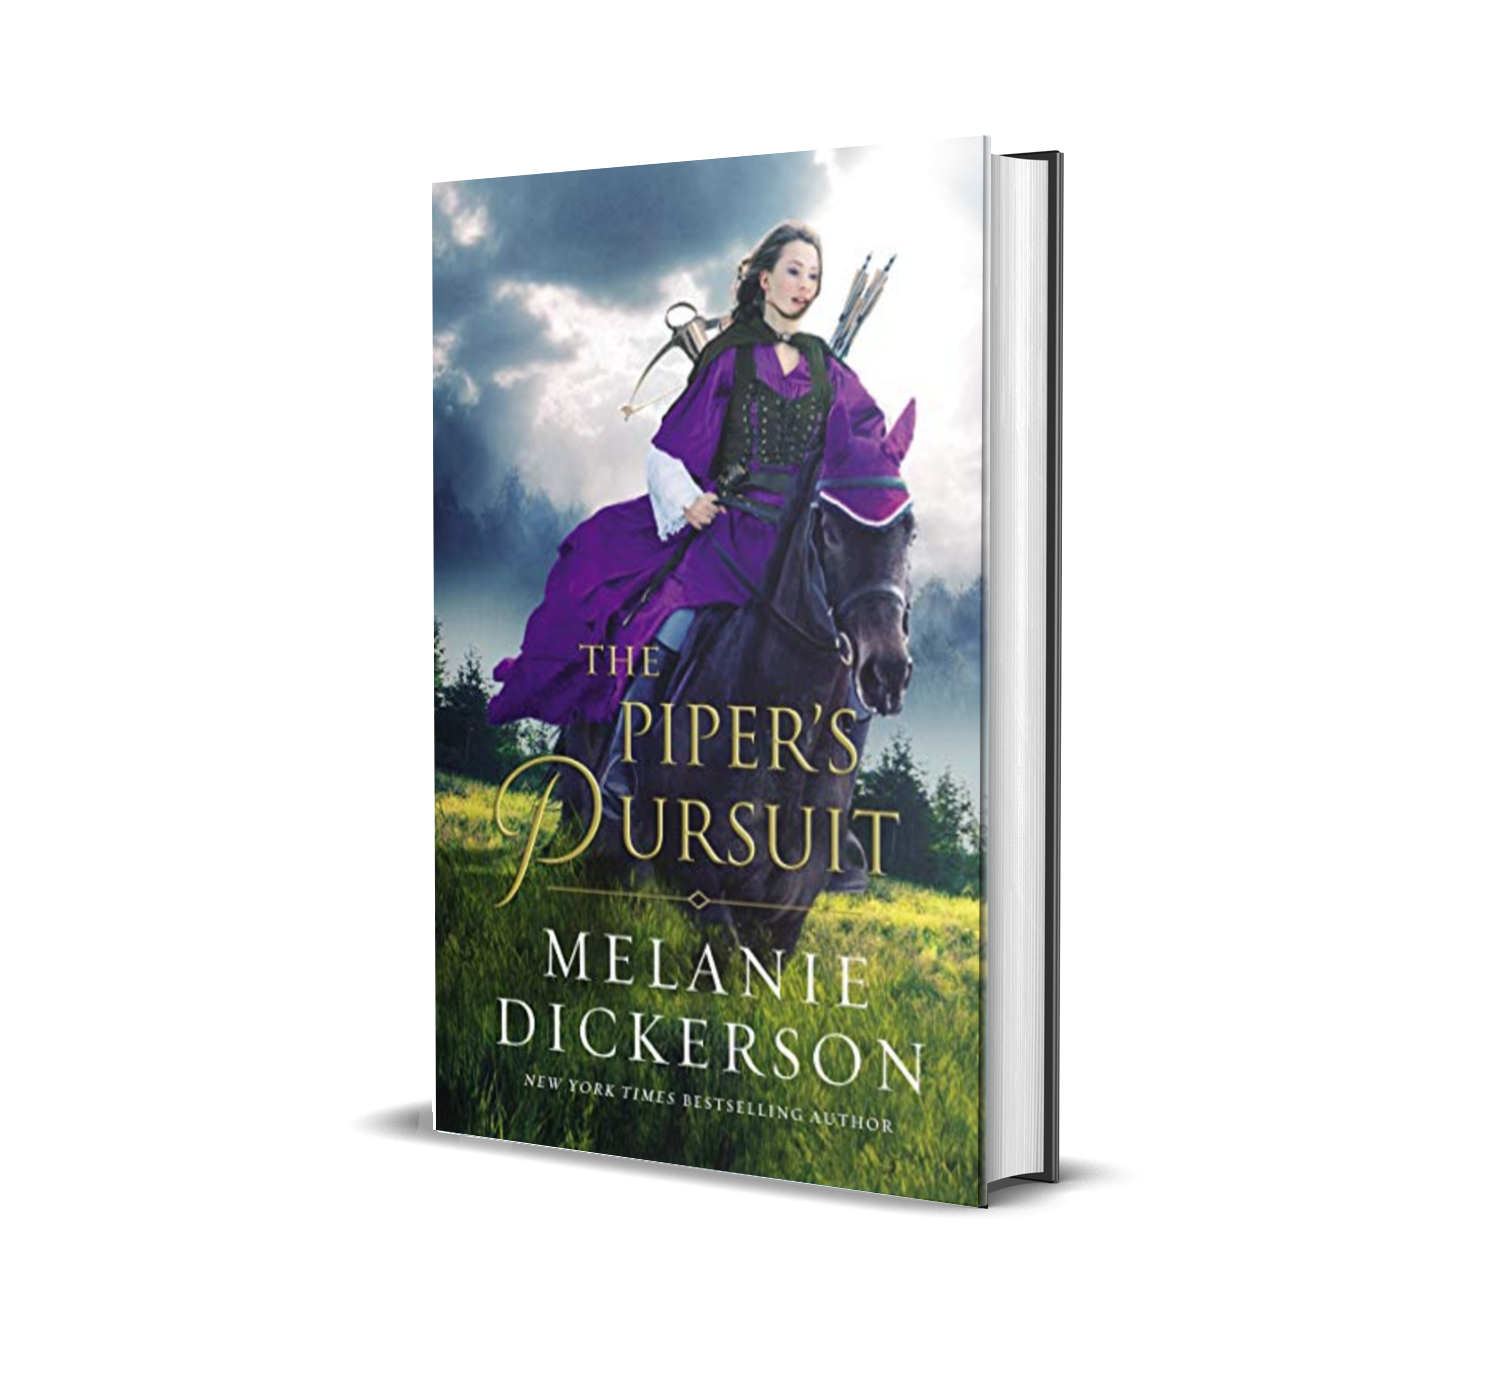 The Piper's Pursuit